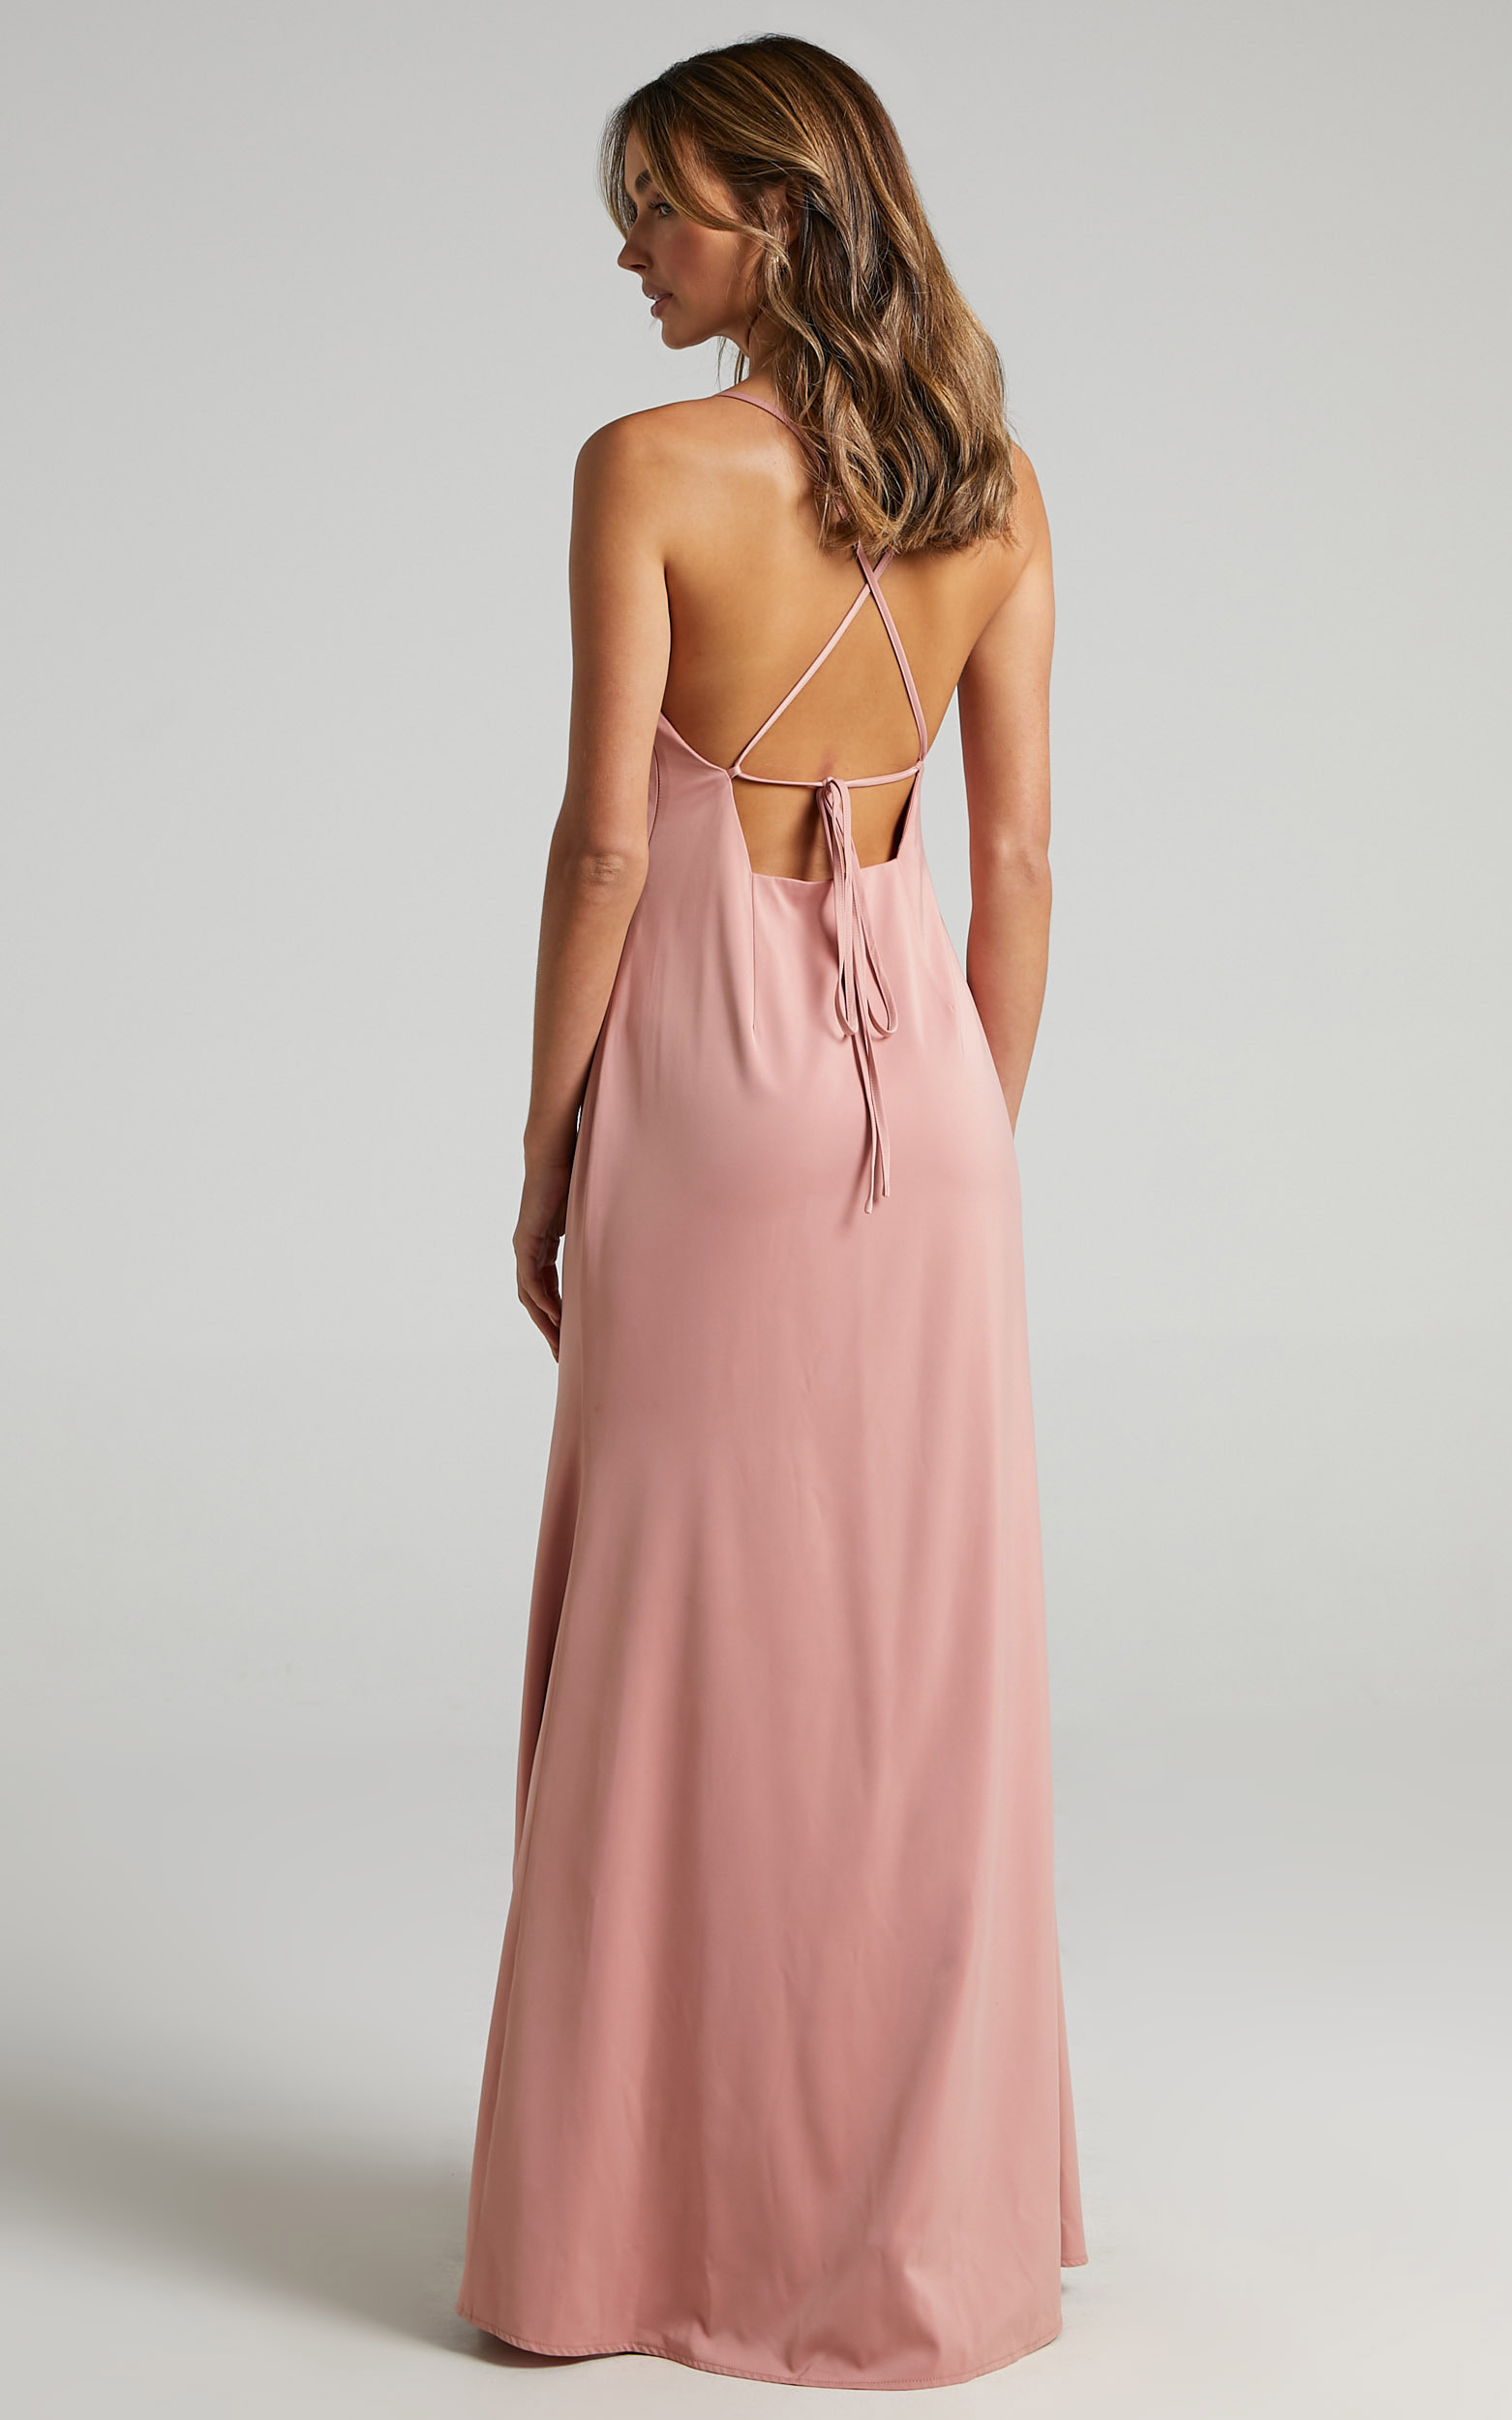 A Final Toast Dress in Peach Satin - 06, ORG2, hi-res image number null